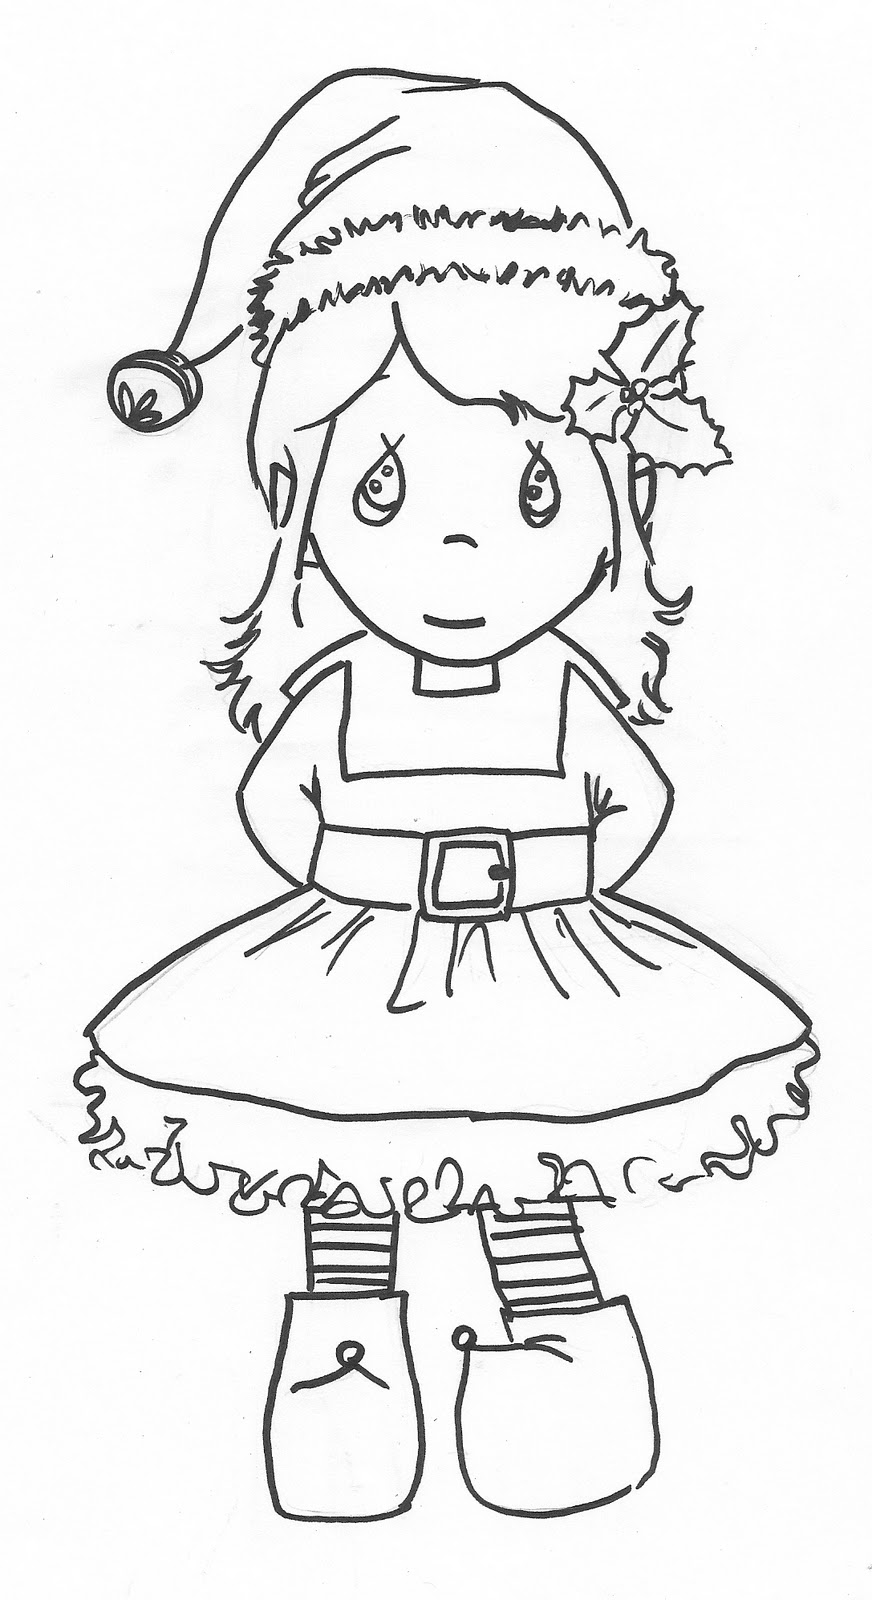 elf on the shelf coloring pages pdf | 1000+ images about !just for kids coloring on Pinterest